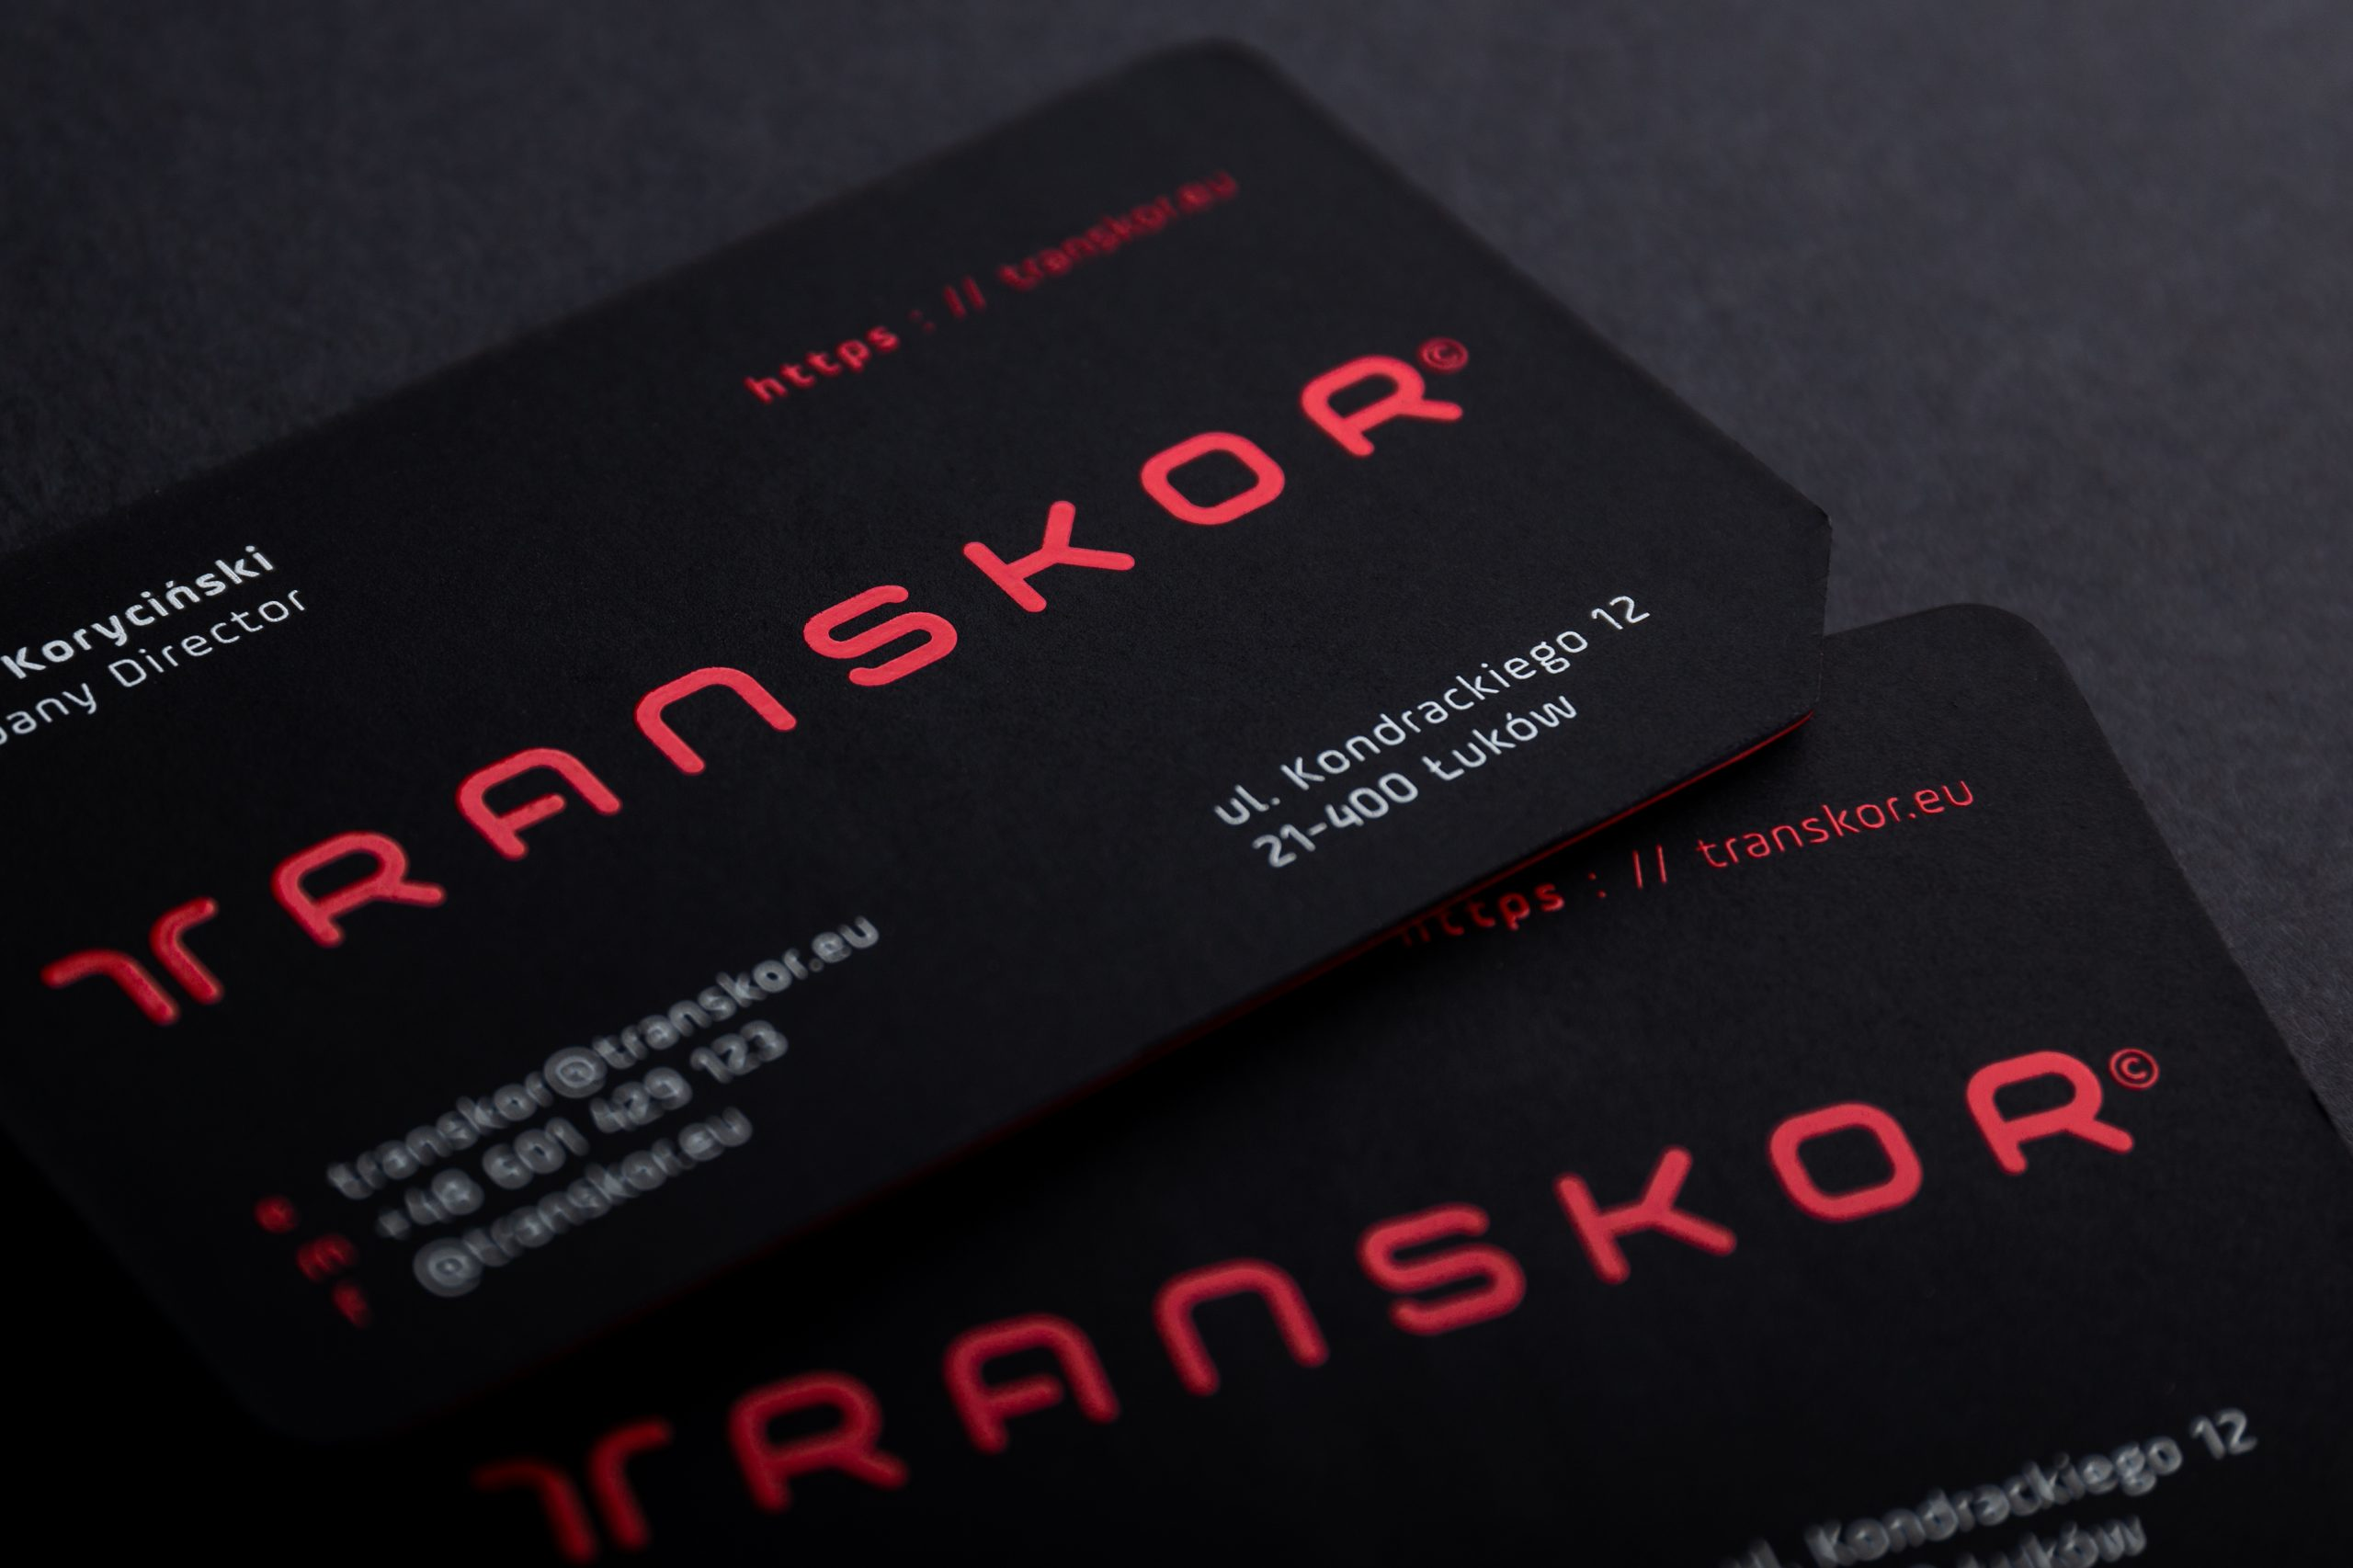 Transkor business card